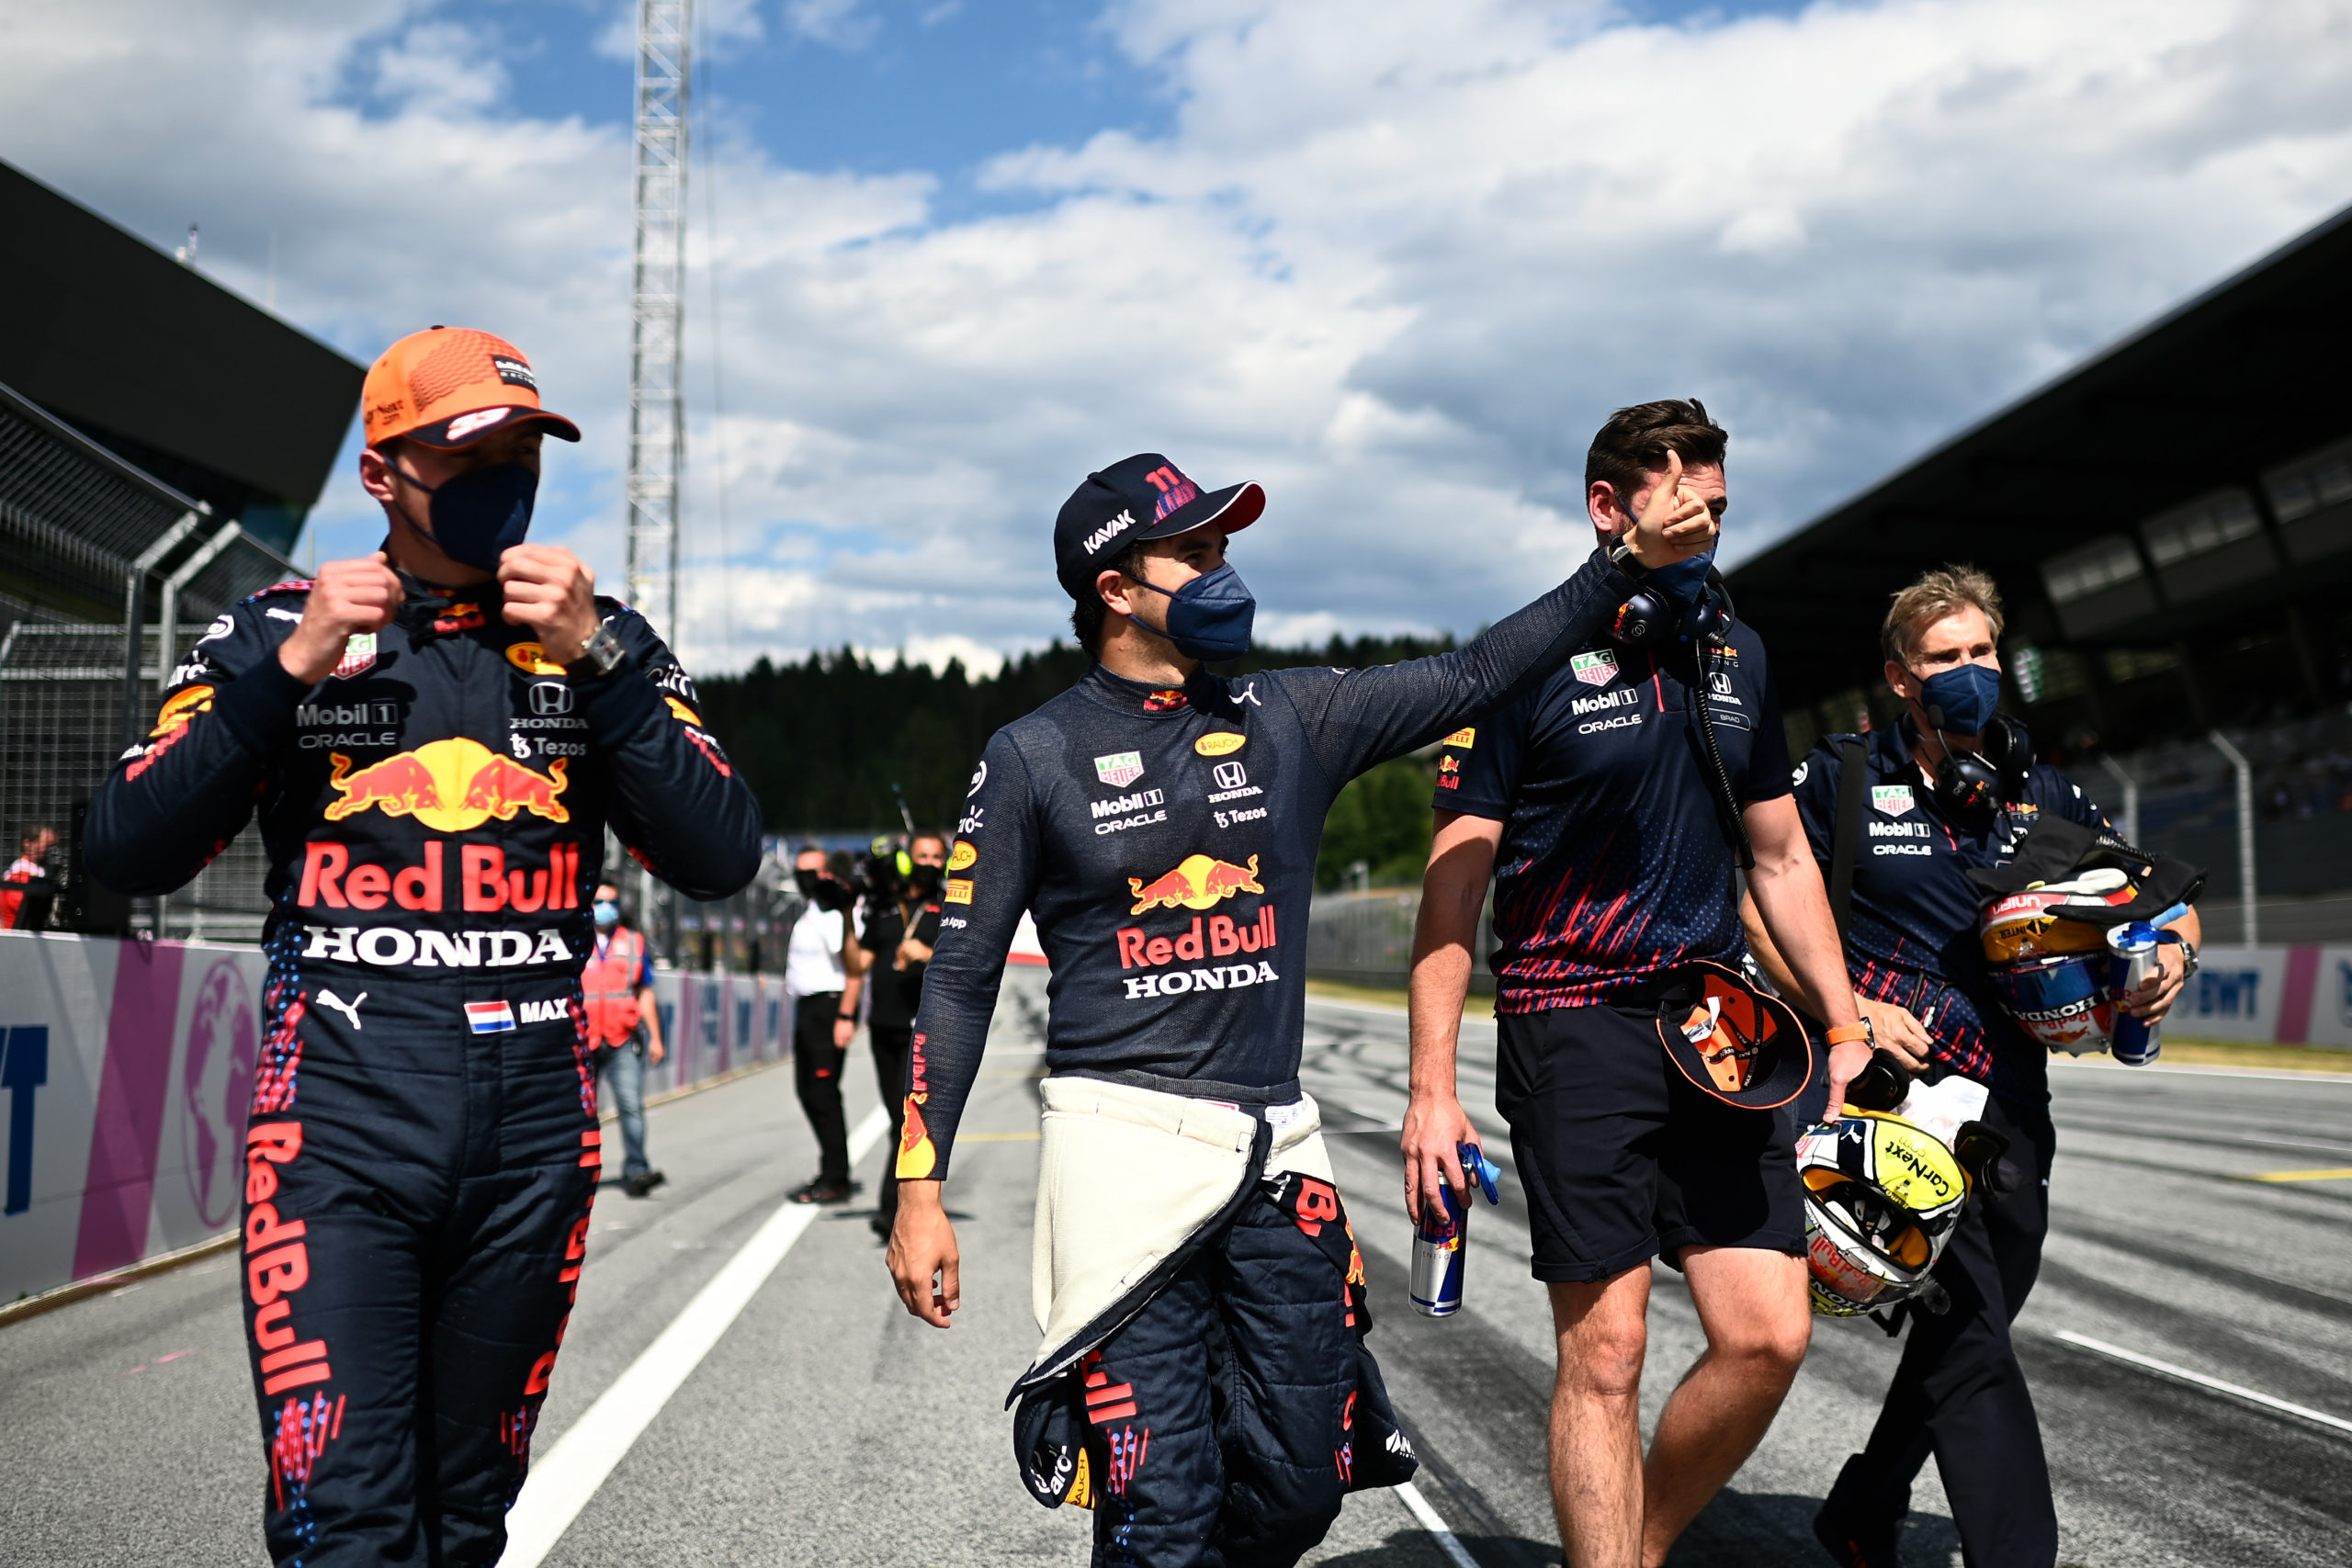 SPIELBERG, AUSTRIA - JULY 03: Pole position qualifier Max Verstappen of Netherlands and Red Bull Racing and third place qualifier Sergio Perez of Mexico and Red Bull Racing celebrate in parc ferme during qualifying ahead of the F1 Grand Prix of Austria at Red Bull Ring on July 03, 2021 in Spielberg, Austria. (Photo by Christian Bruna - Pool/Getty Images) // Getty Images / Red Bull Content Pool  // SI202107030384 // Usage for editorial use only //